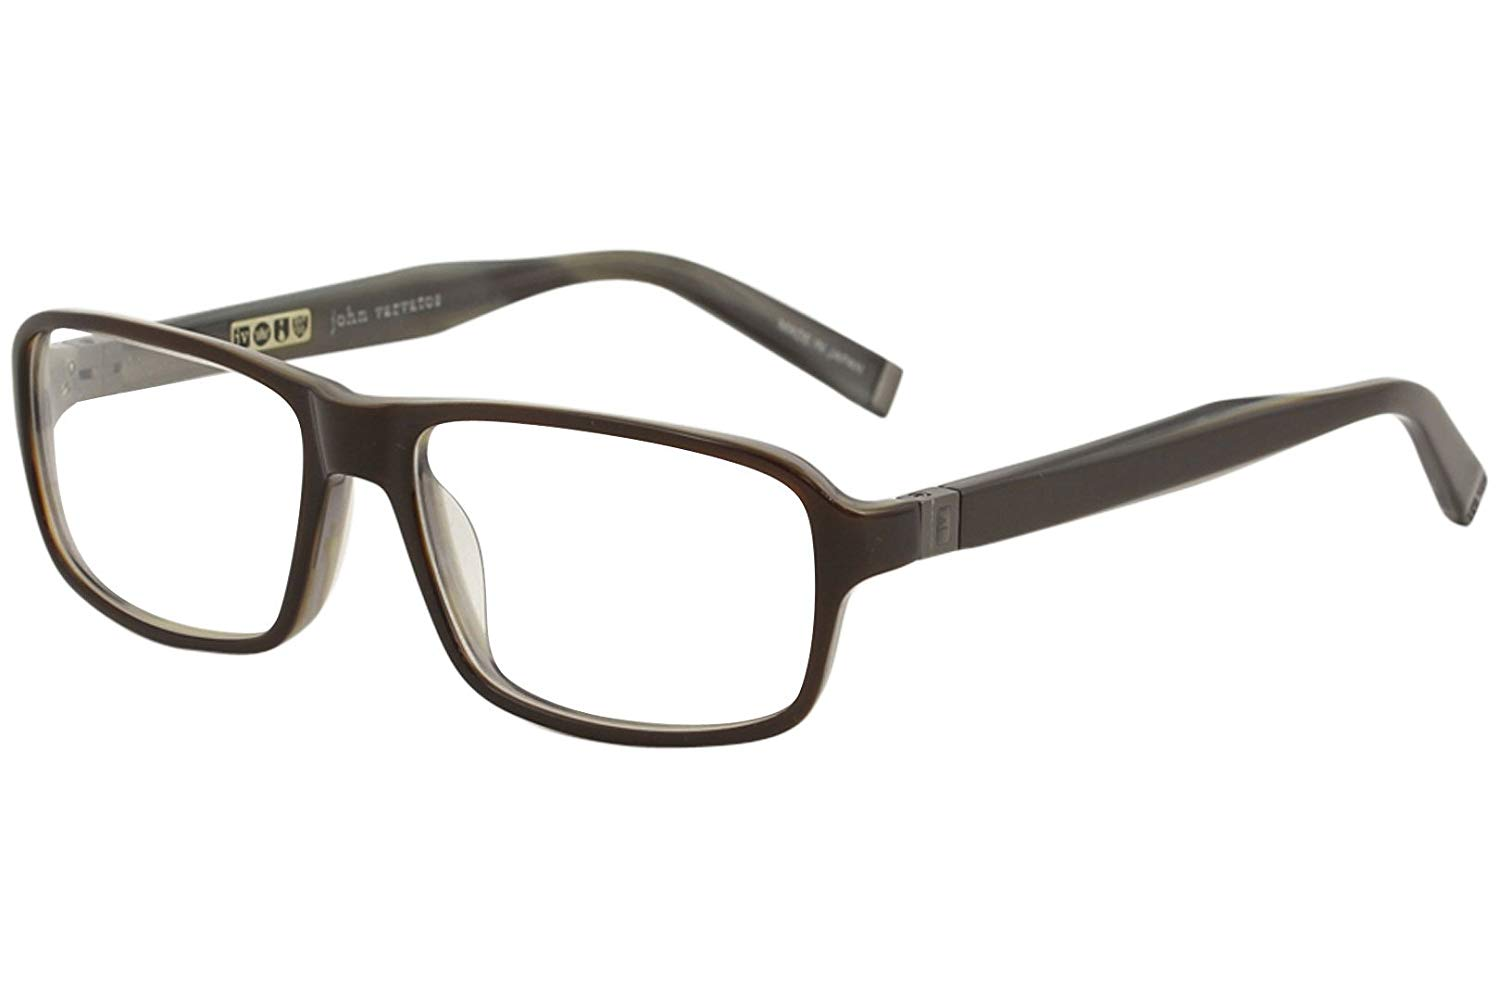 f6c7f68bbacd Get Quotations · John Varvatos V340 Mens Designer Full-rim Flexible Hinges  Eyeglasses Eyewear